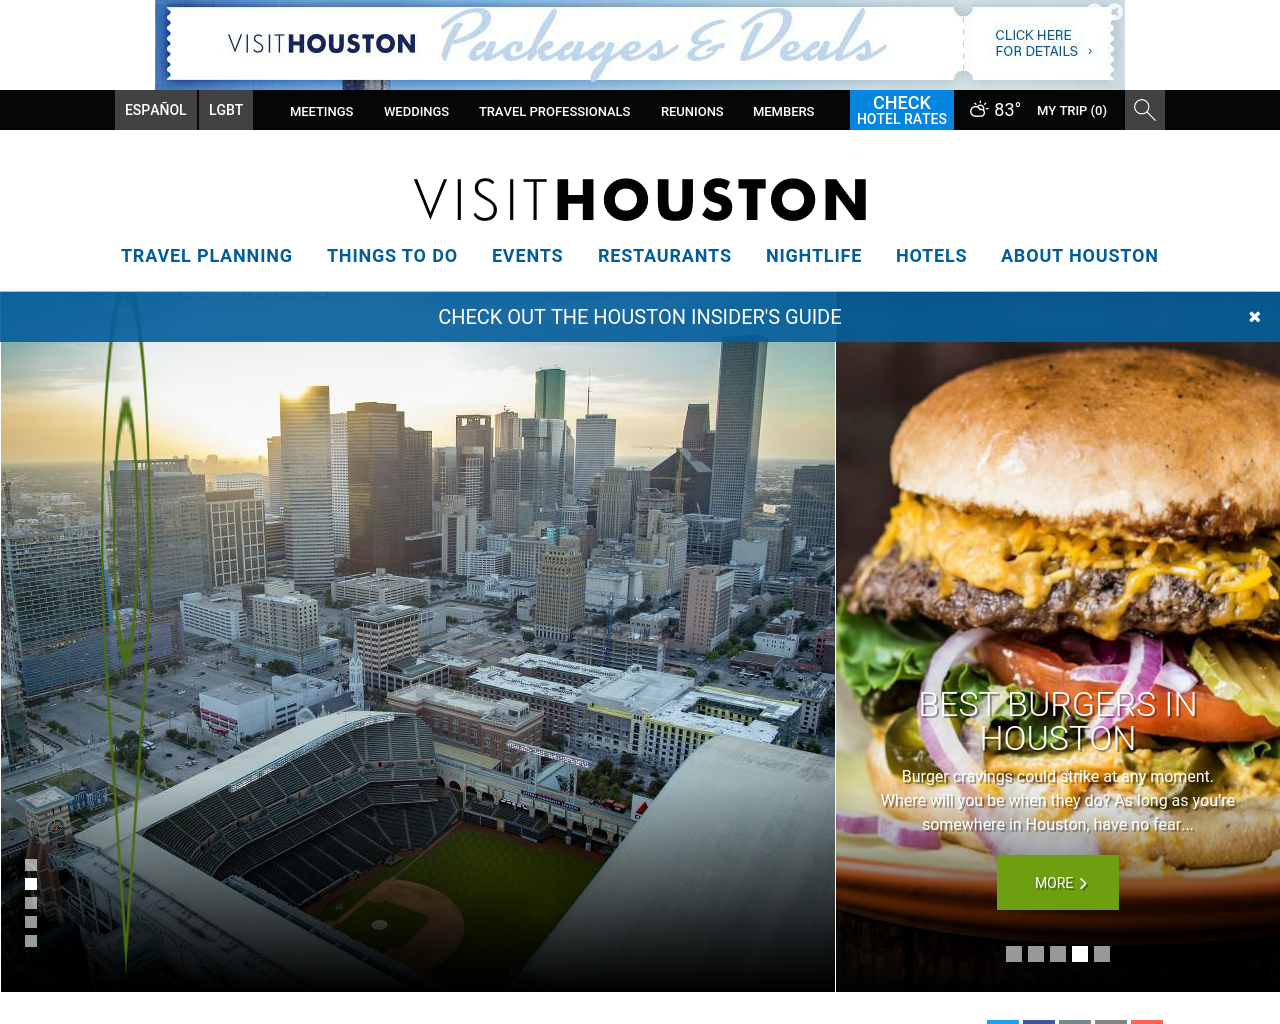 The-Greater-Houston-Convention-And-Visitors-Bureau-Advertising-Reviews-Pricing